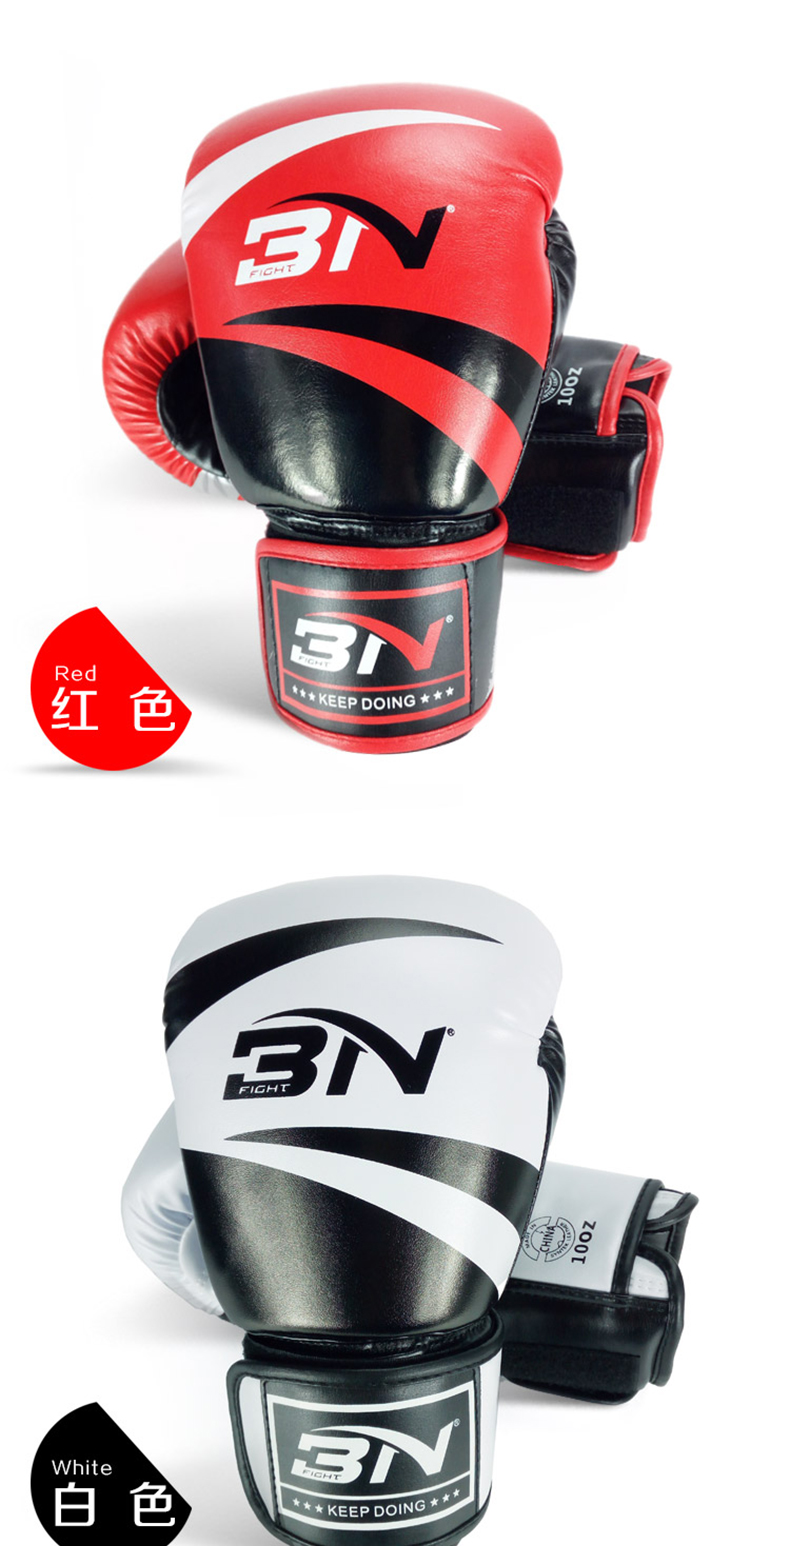 adult profetional boxing gloves MMA sanda boxing punch bag gloves boxing equipment 10 oz 12oz 14oz 16oz 2